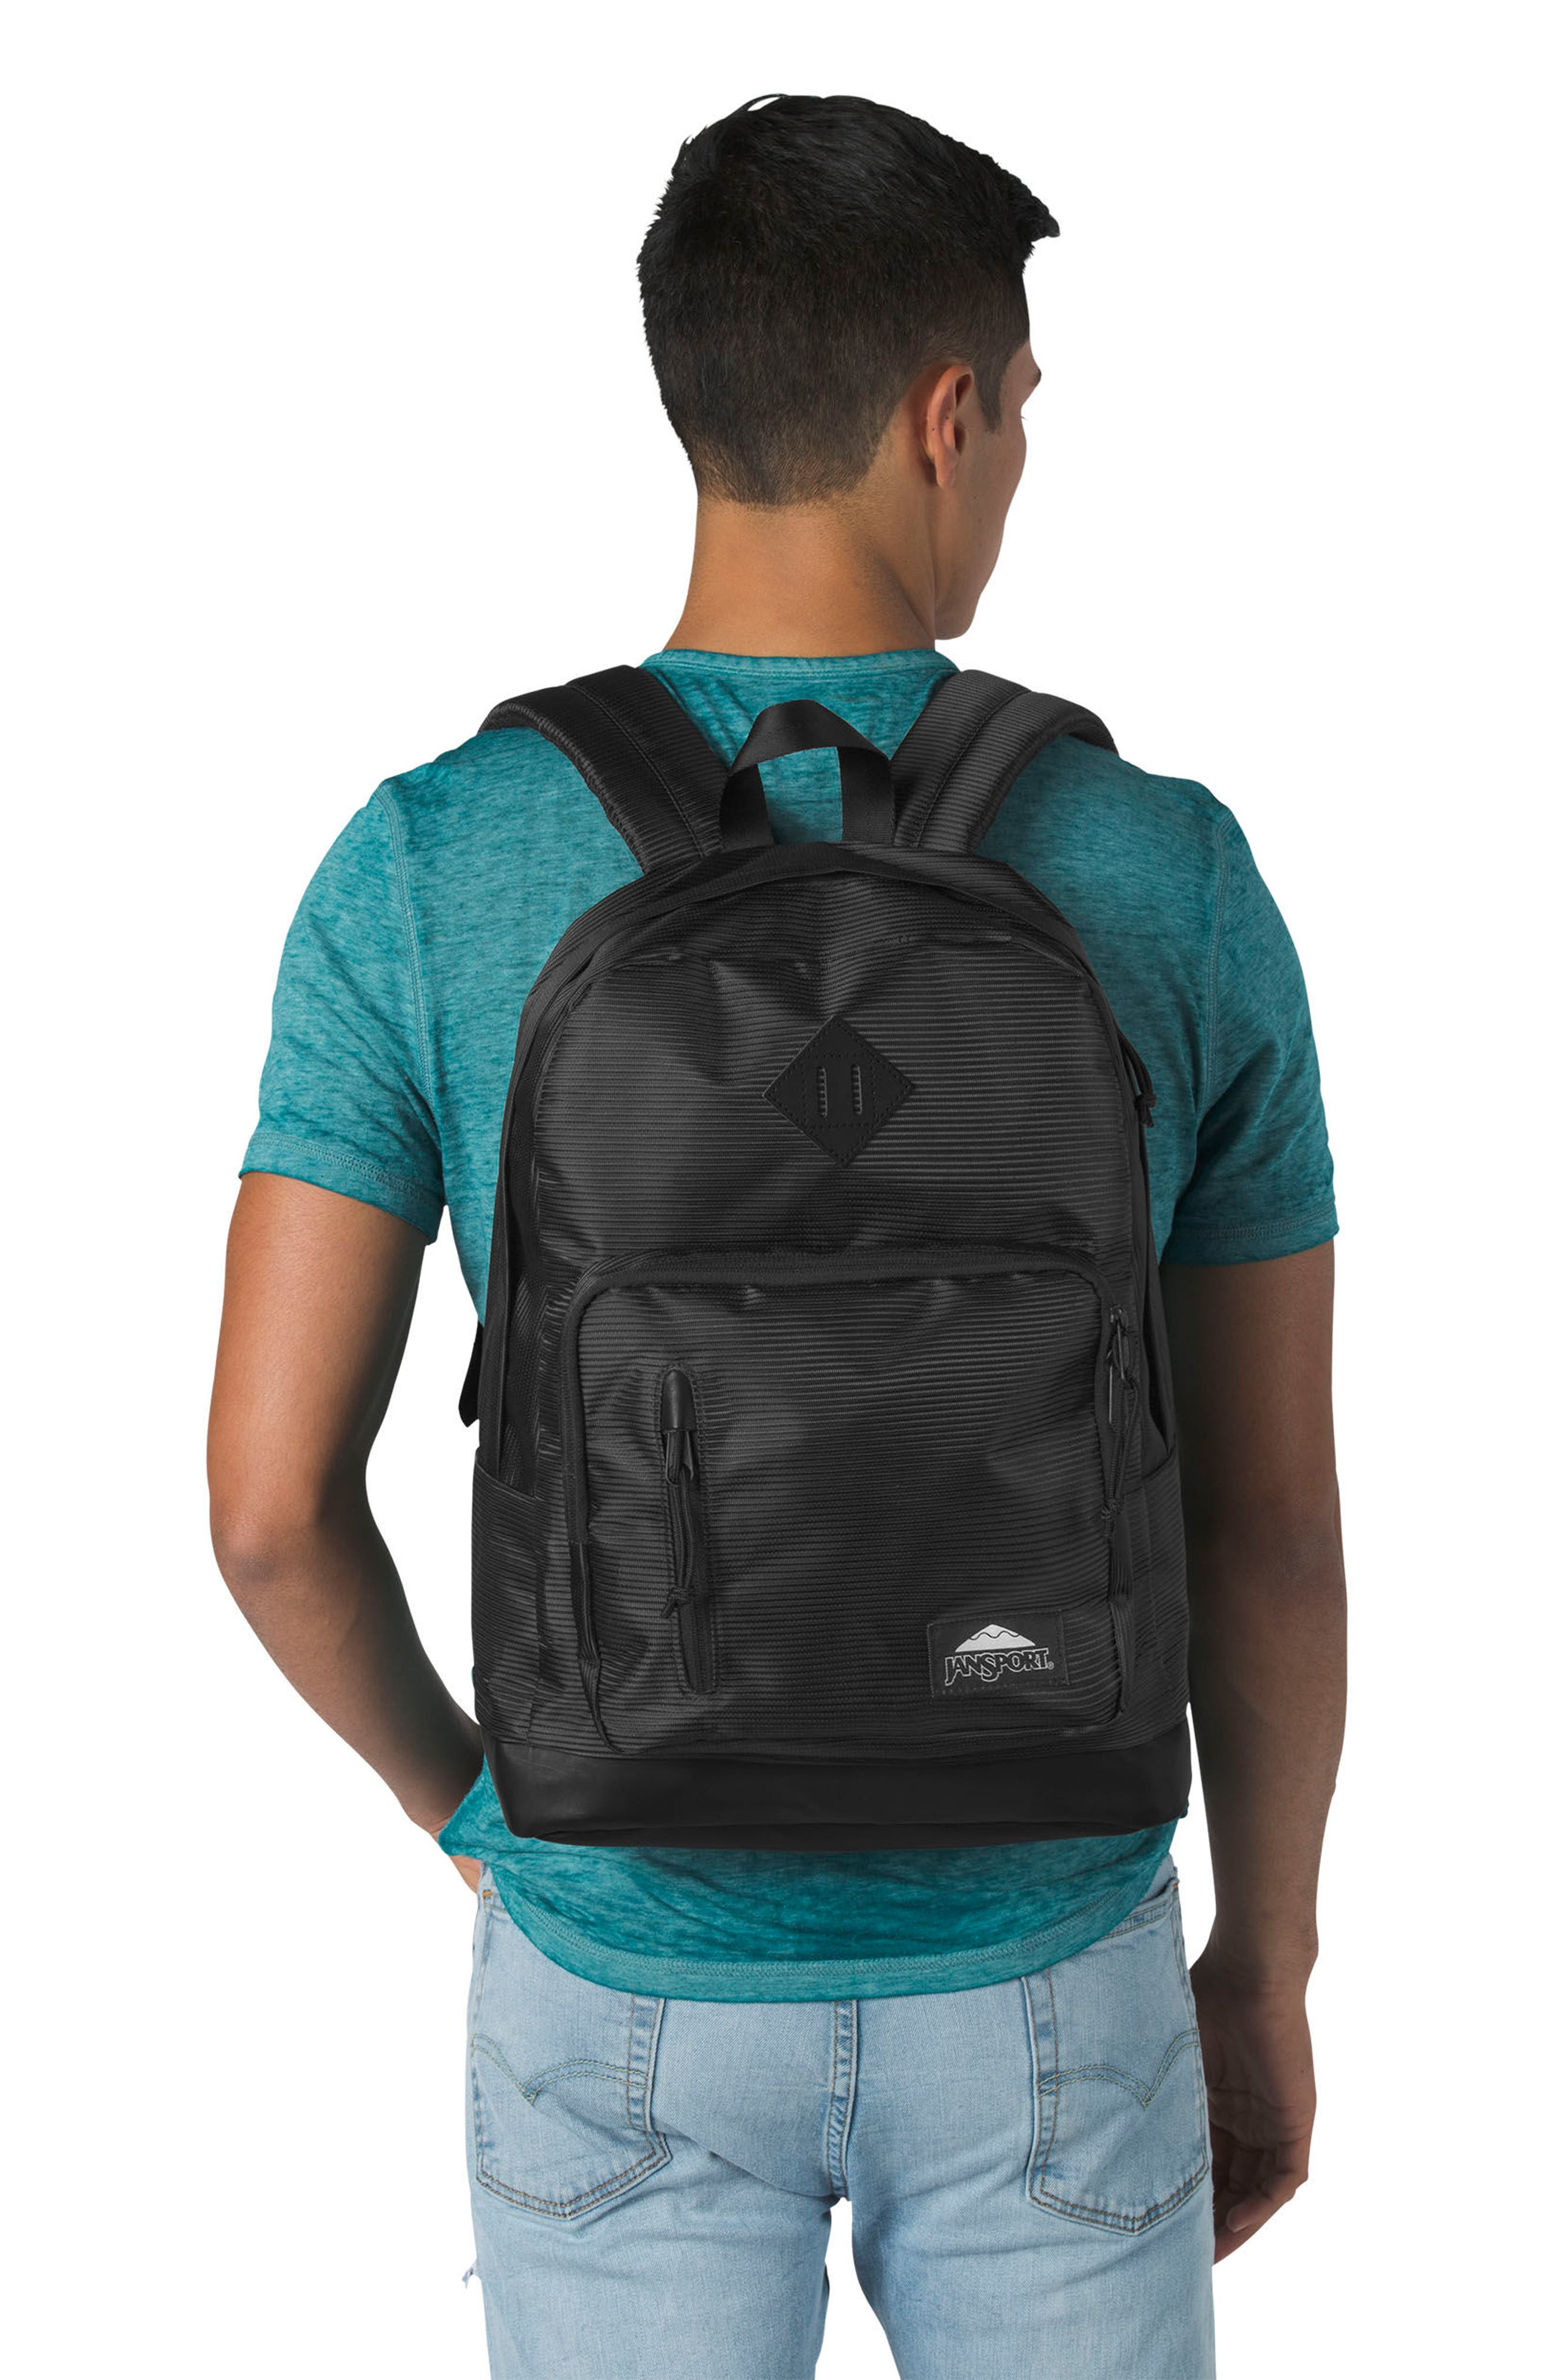 Axiom Backpack,                             Alternate thumbnail 2, color,                             Black Line